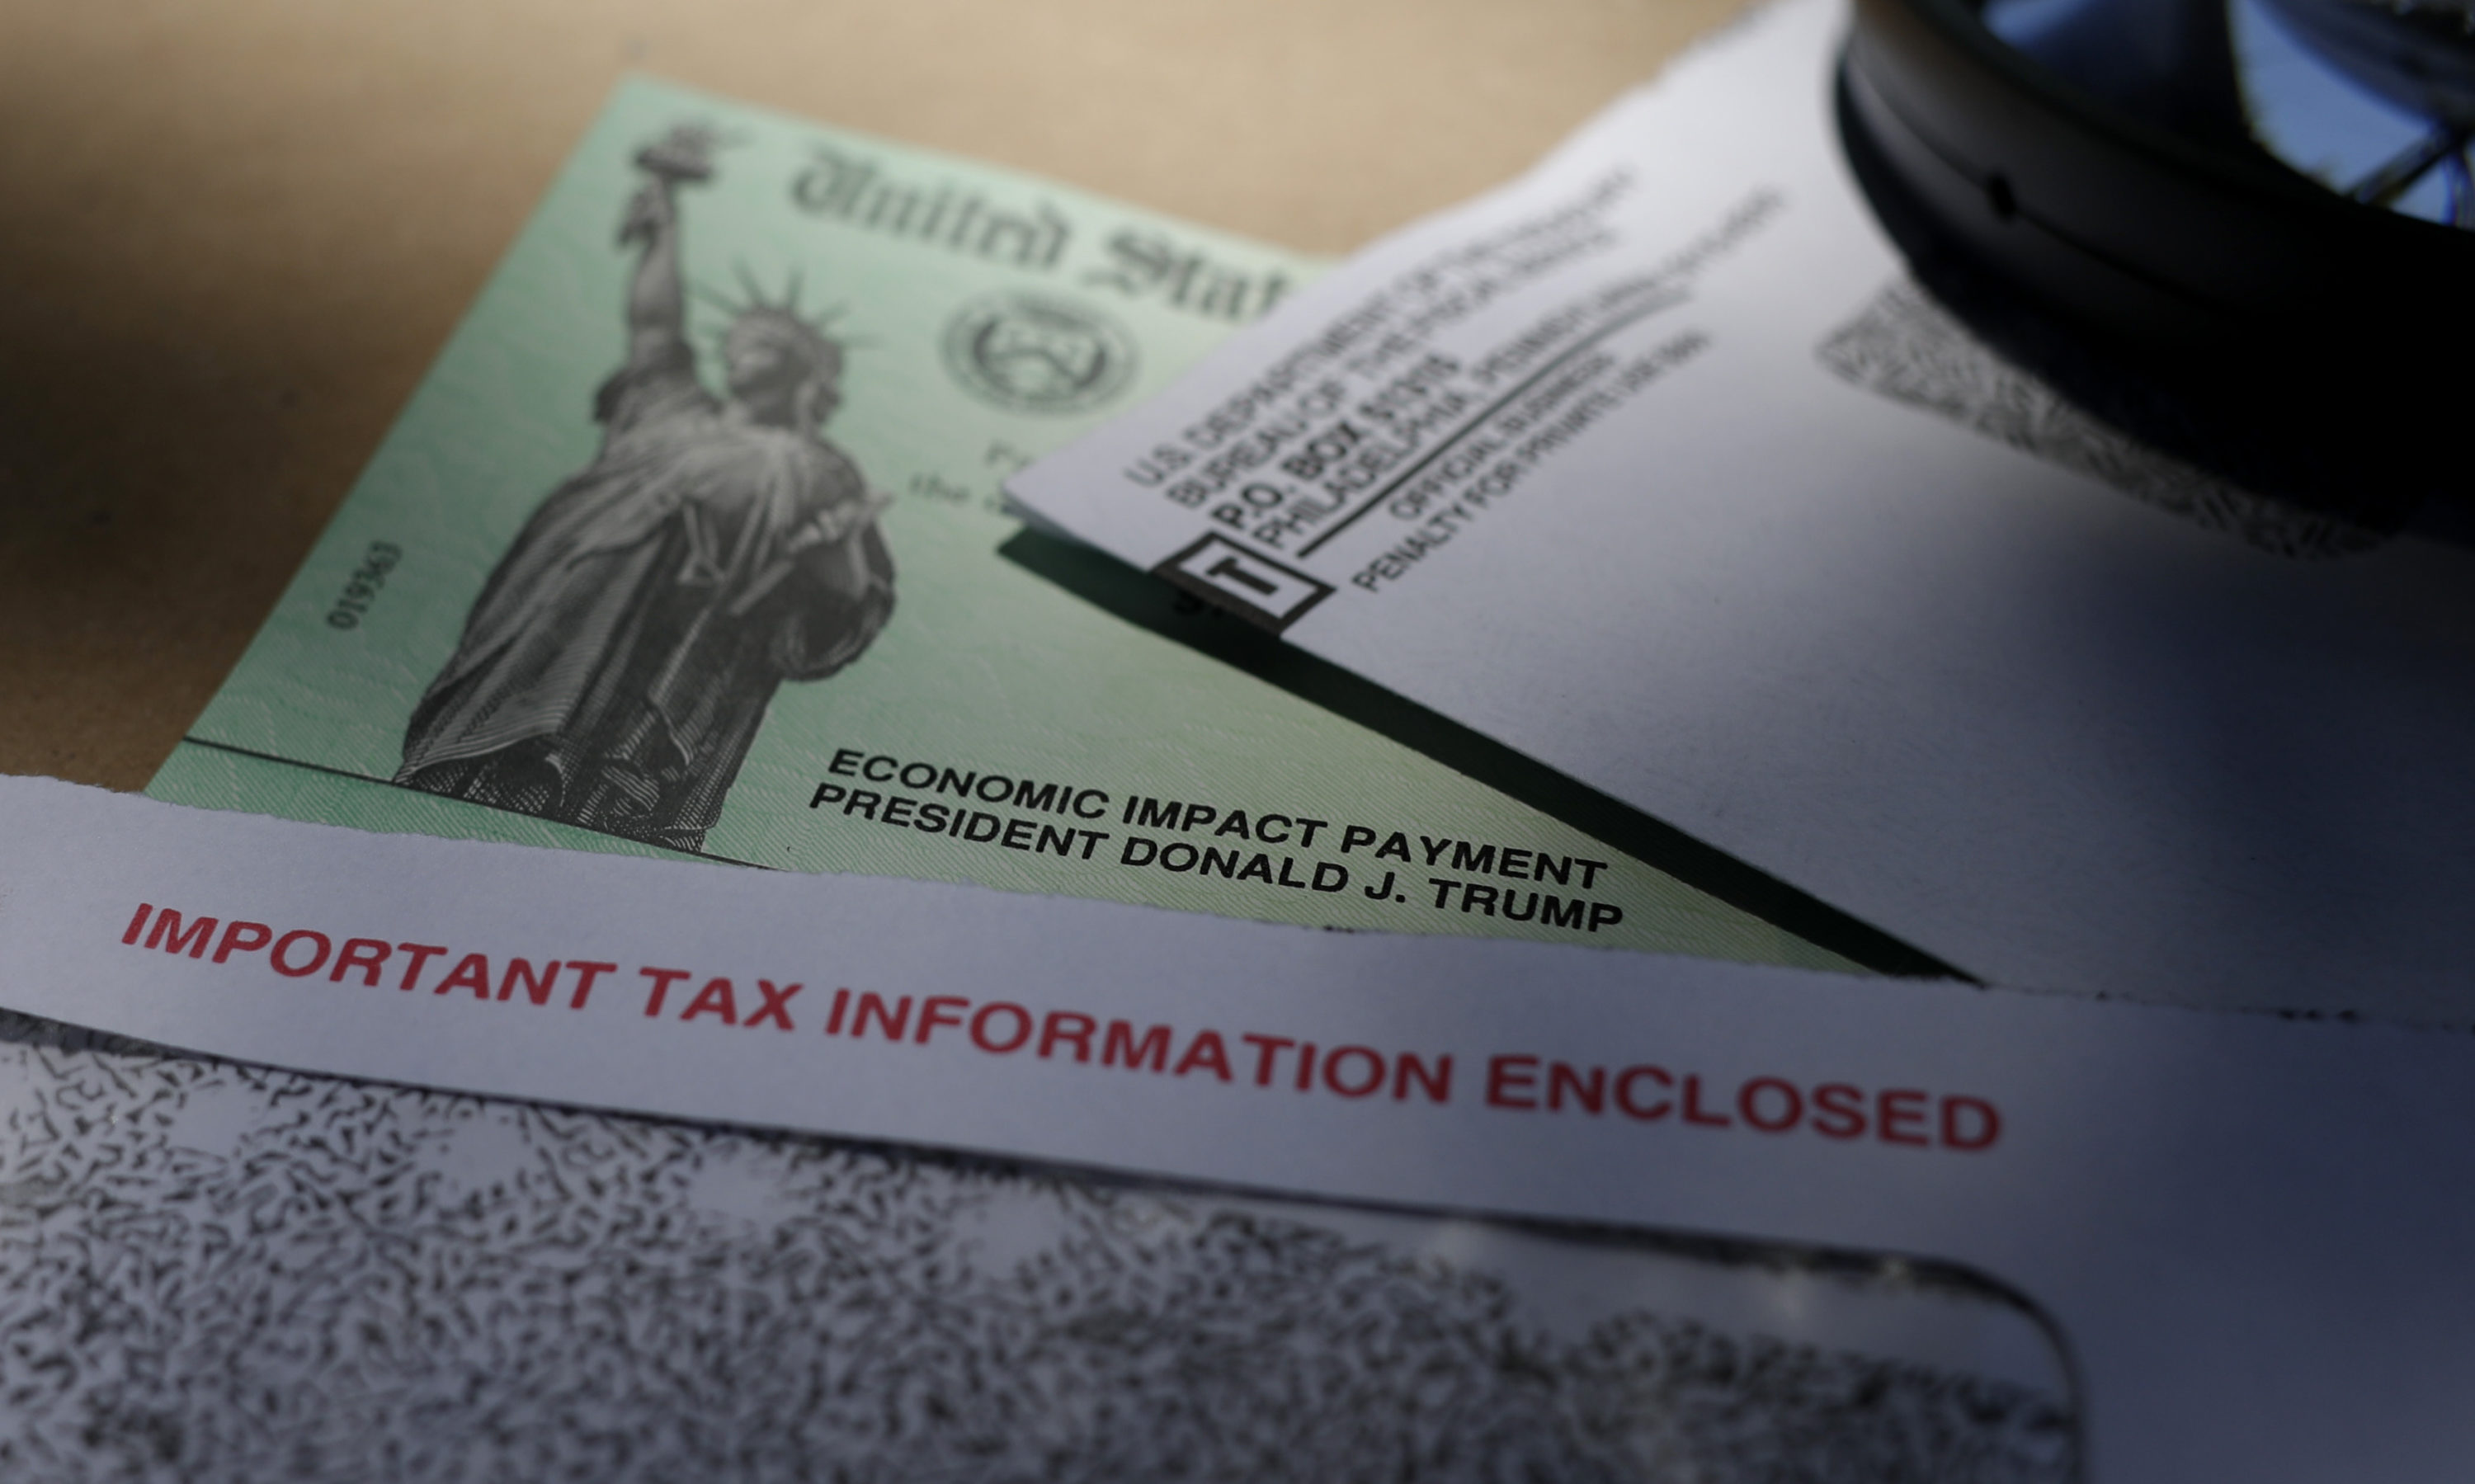 A stimulus check issued by the IRS to help combat the adverse economic effects of the COVID-19 outbreak. (Eric Gay/AP)